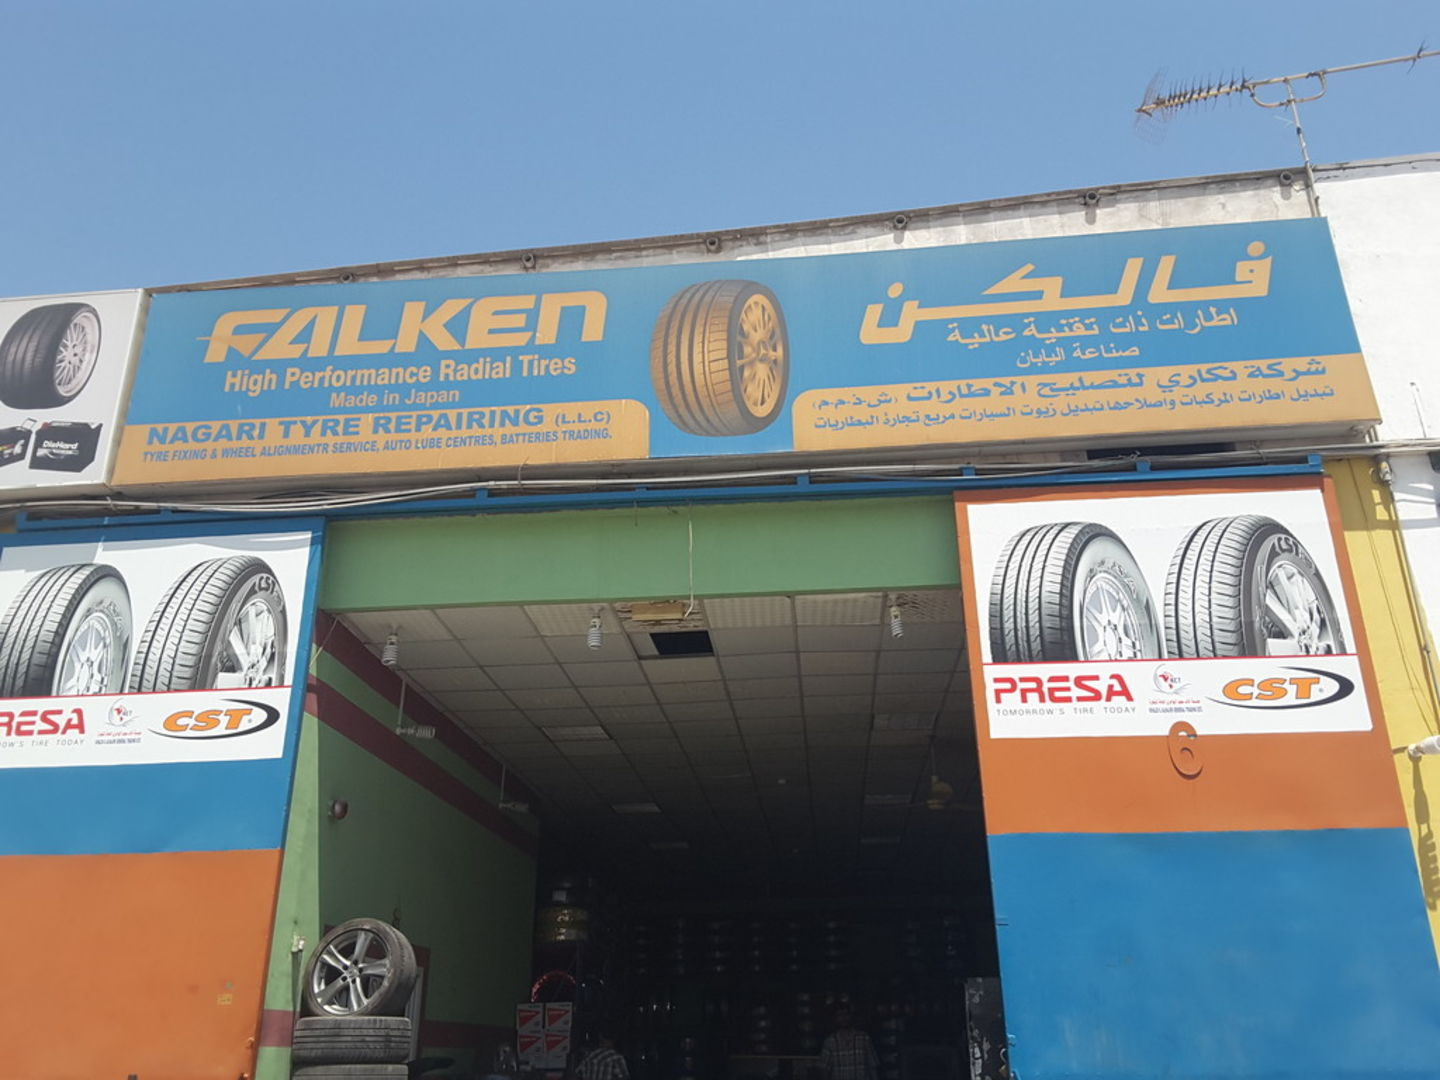 HiDubai-business-nagari-tyre-repairing-co-transport-vehicle-services-auto-spare-parts-accessories-umm-ramool-dubai-2